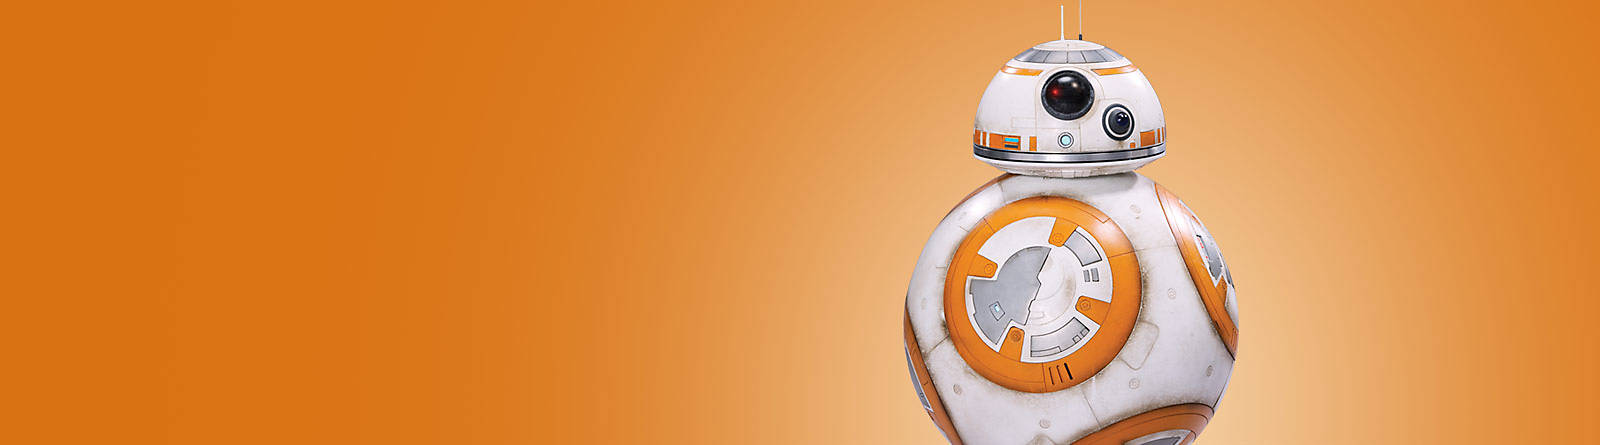 BB-8 This is the droid you're looking for.  Discover our range of BB-8 toys, figurines and more